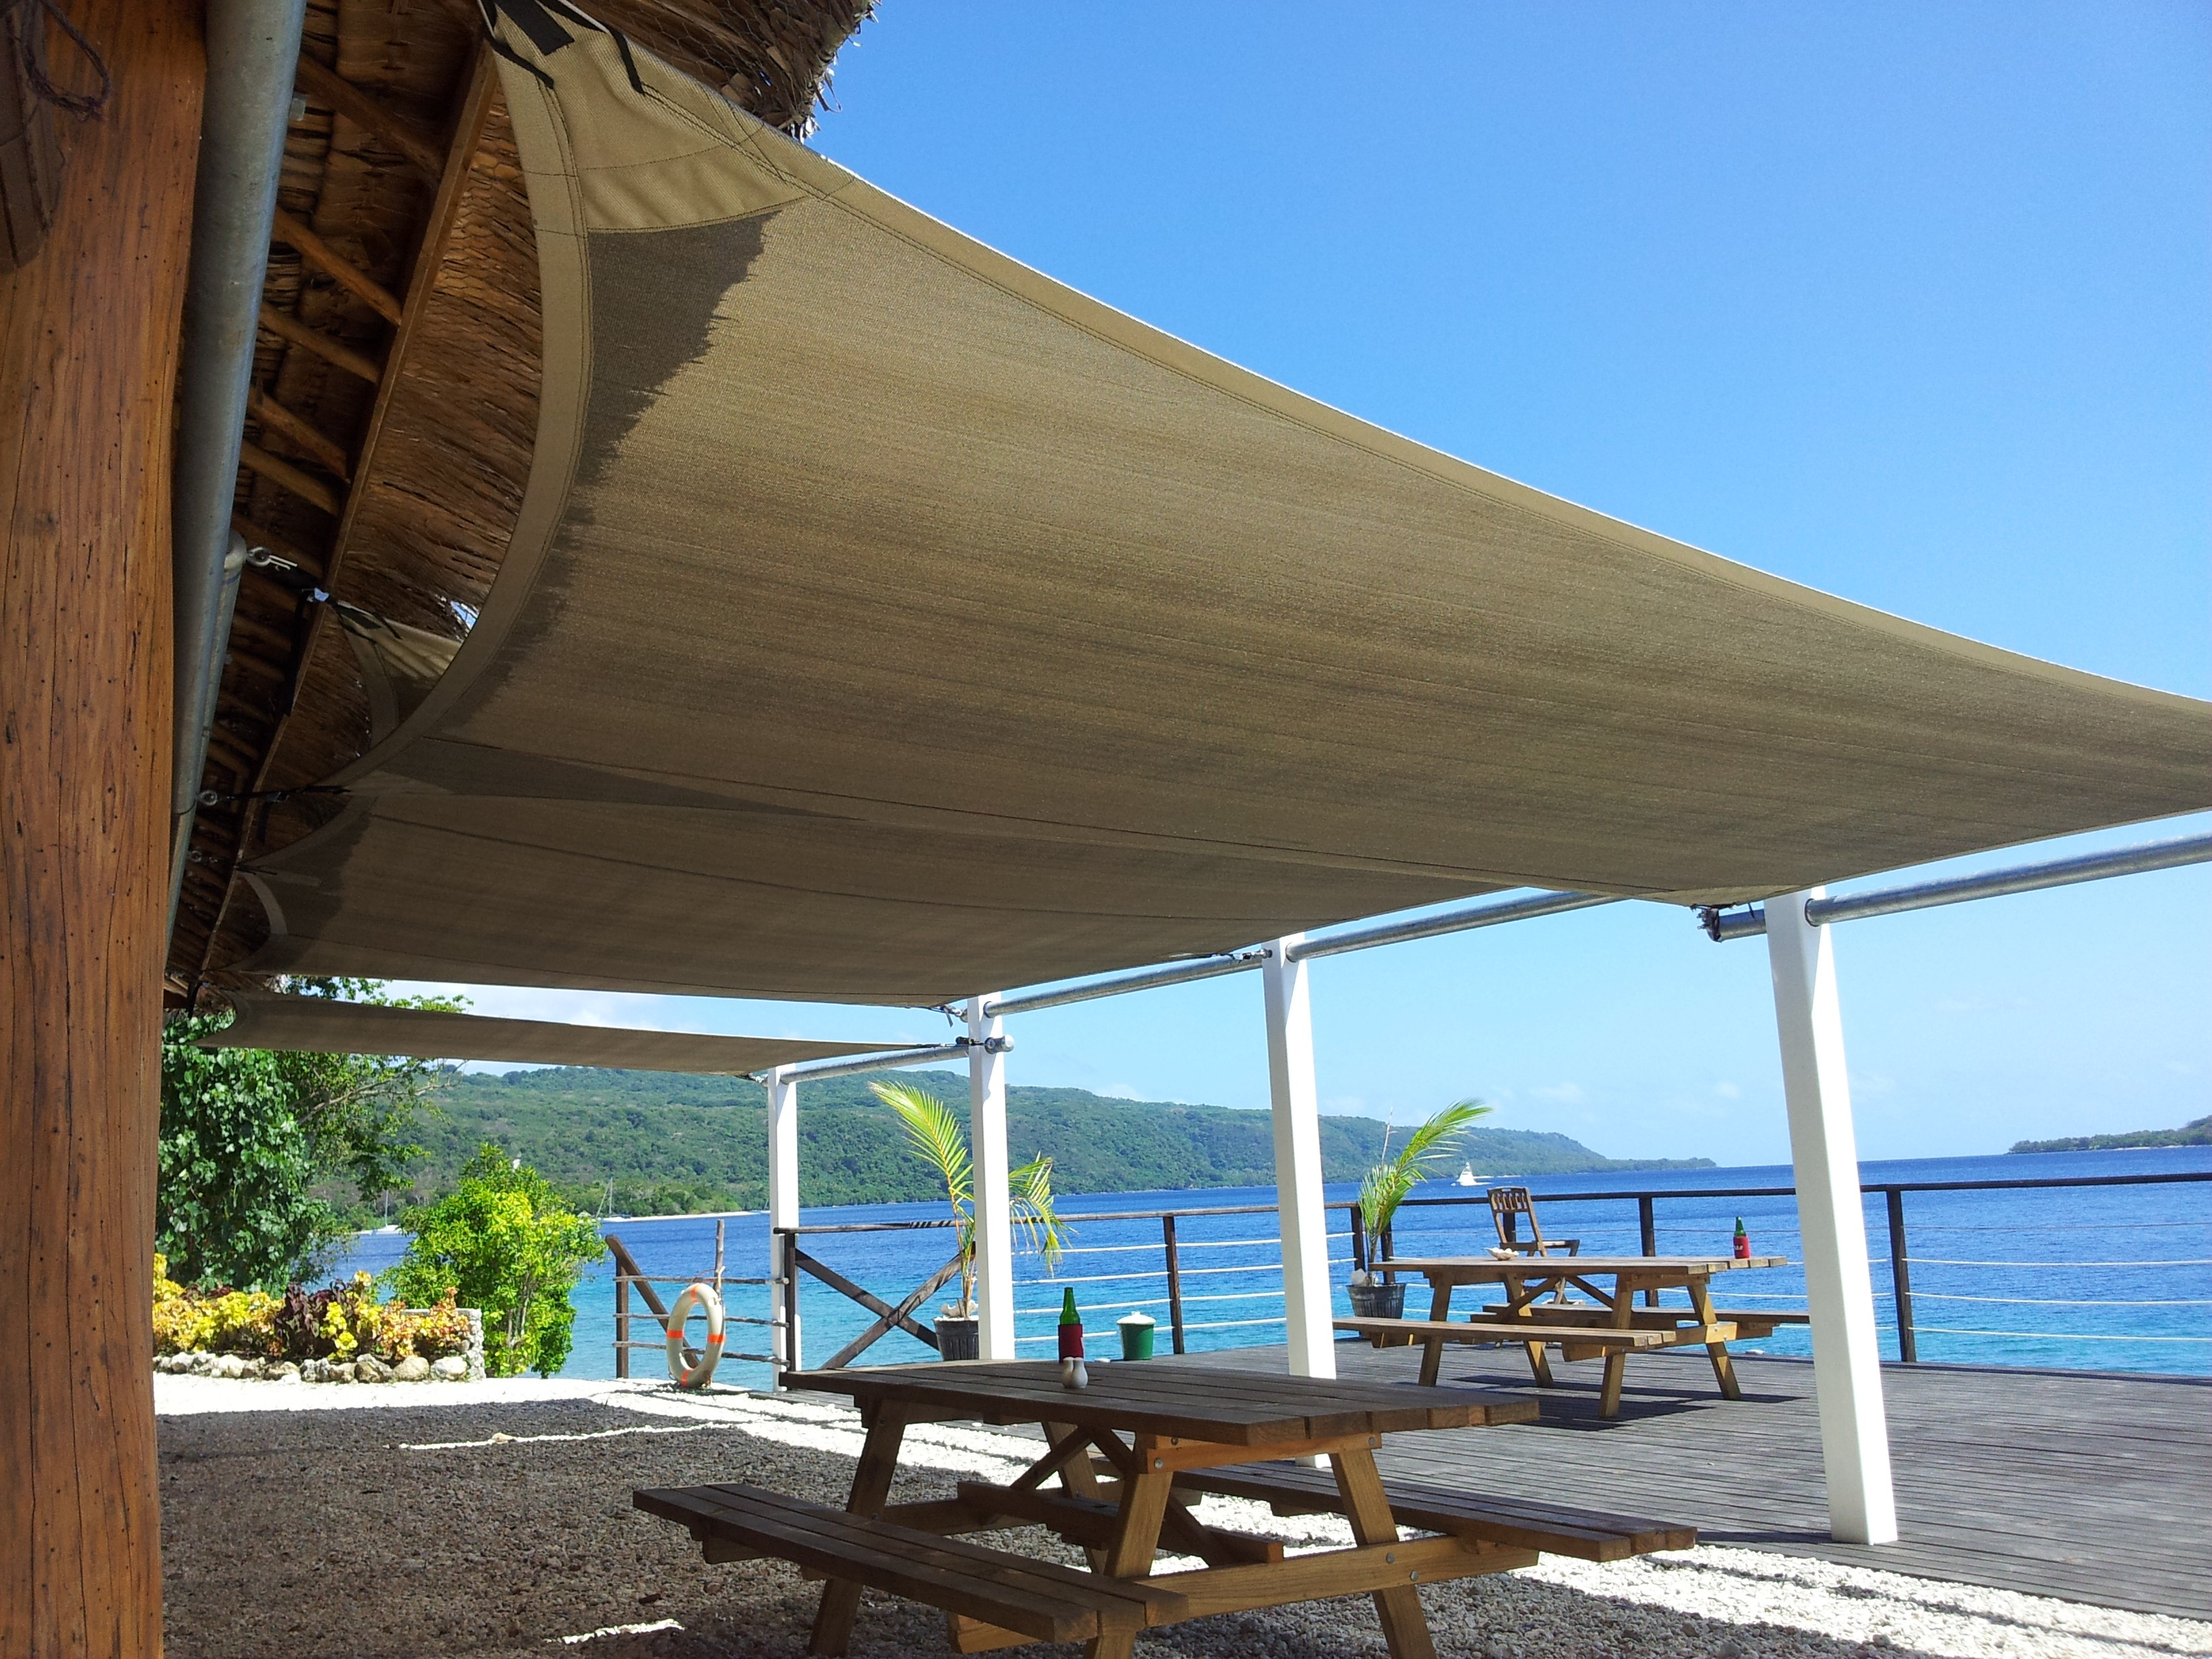 Shade sails at a restaurant dining area